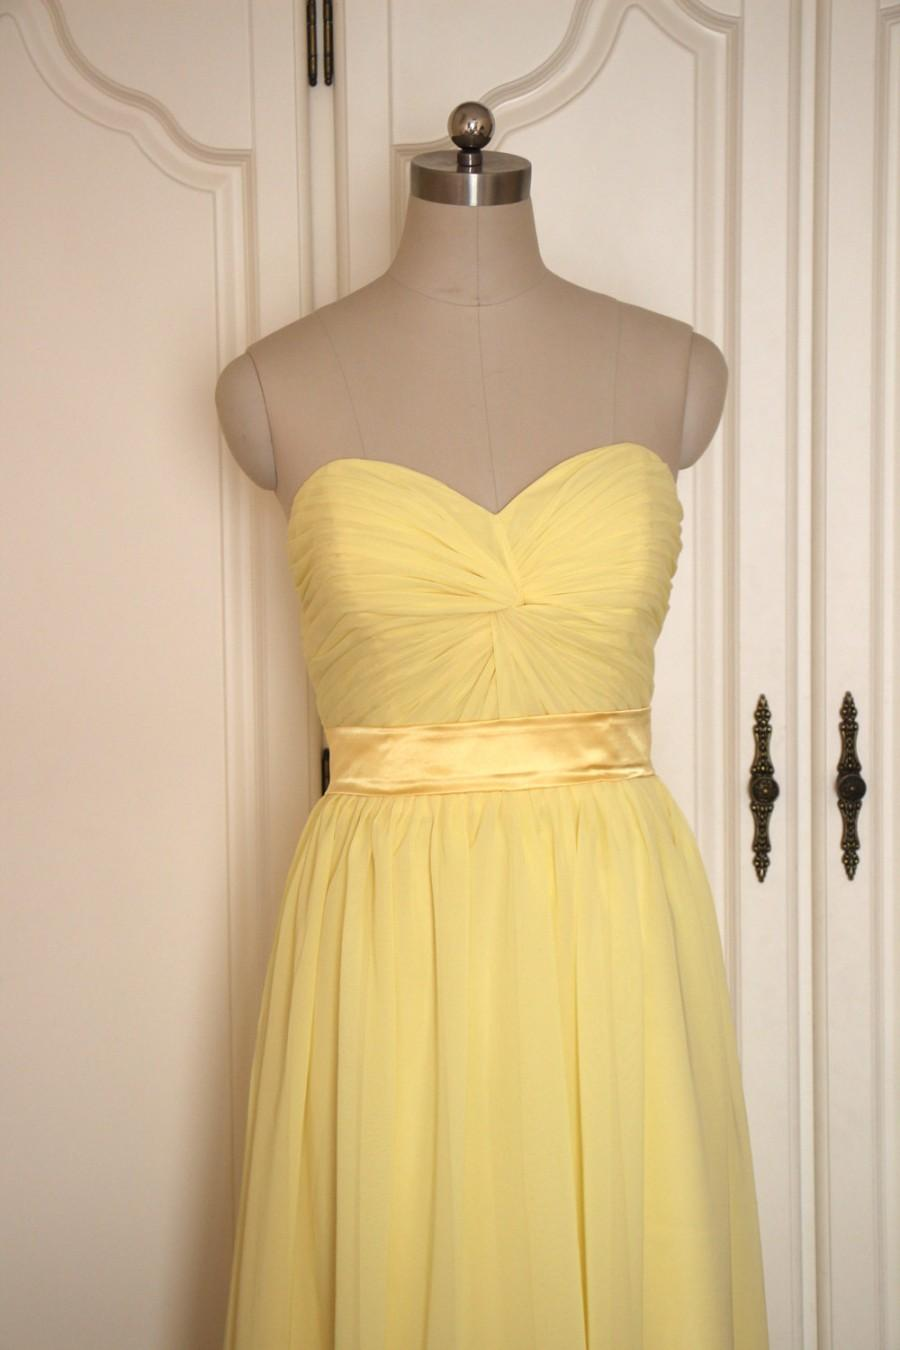 Wedding - Yellow Sweetheart Bridesmaid Dress Short/Floor Length Chiffon Yellow Strapless Bridesmaid Dress - Custom Dress